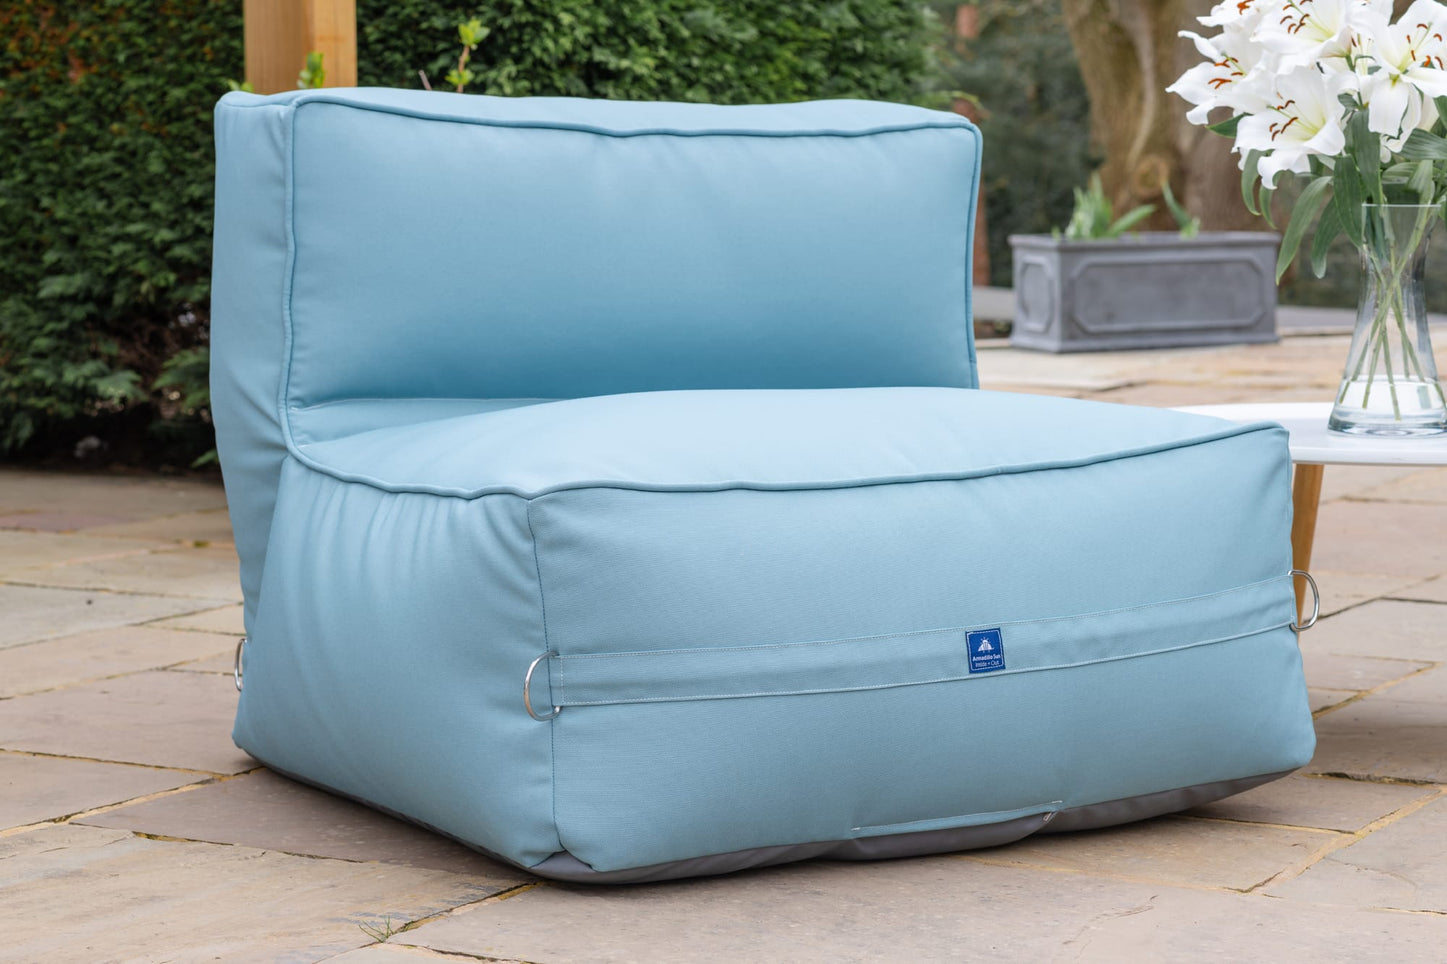 Monaco Modular Bean Bag Chair in Ocean Blue Monaco armadillosun